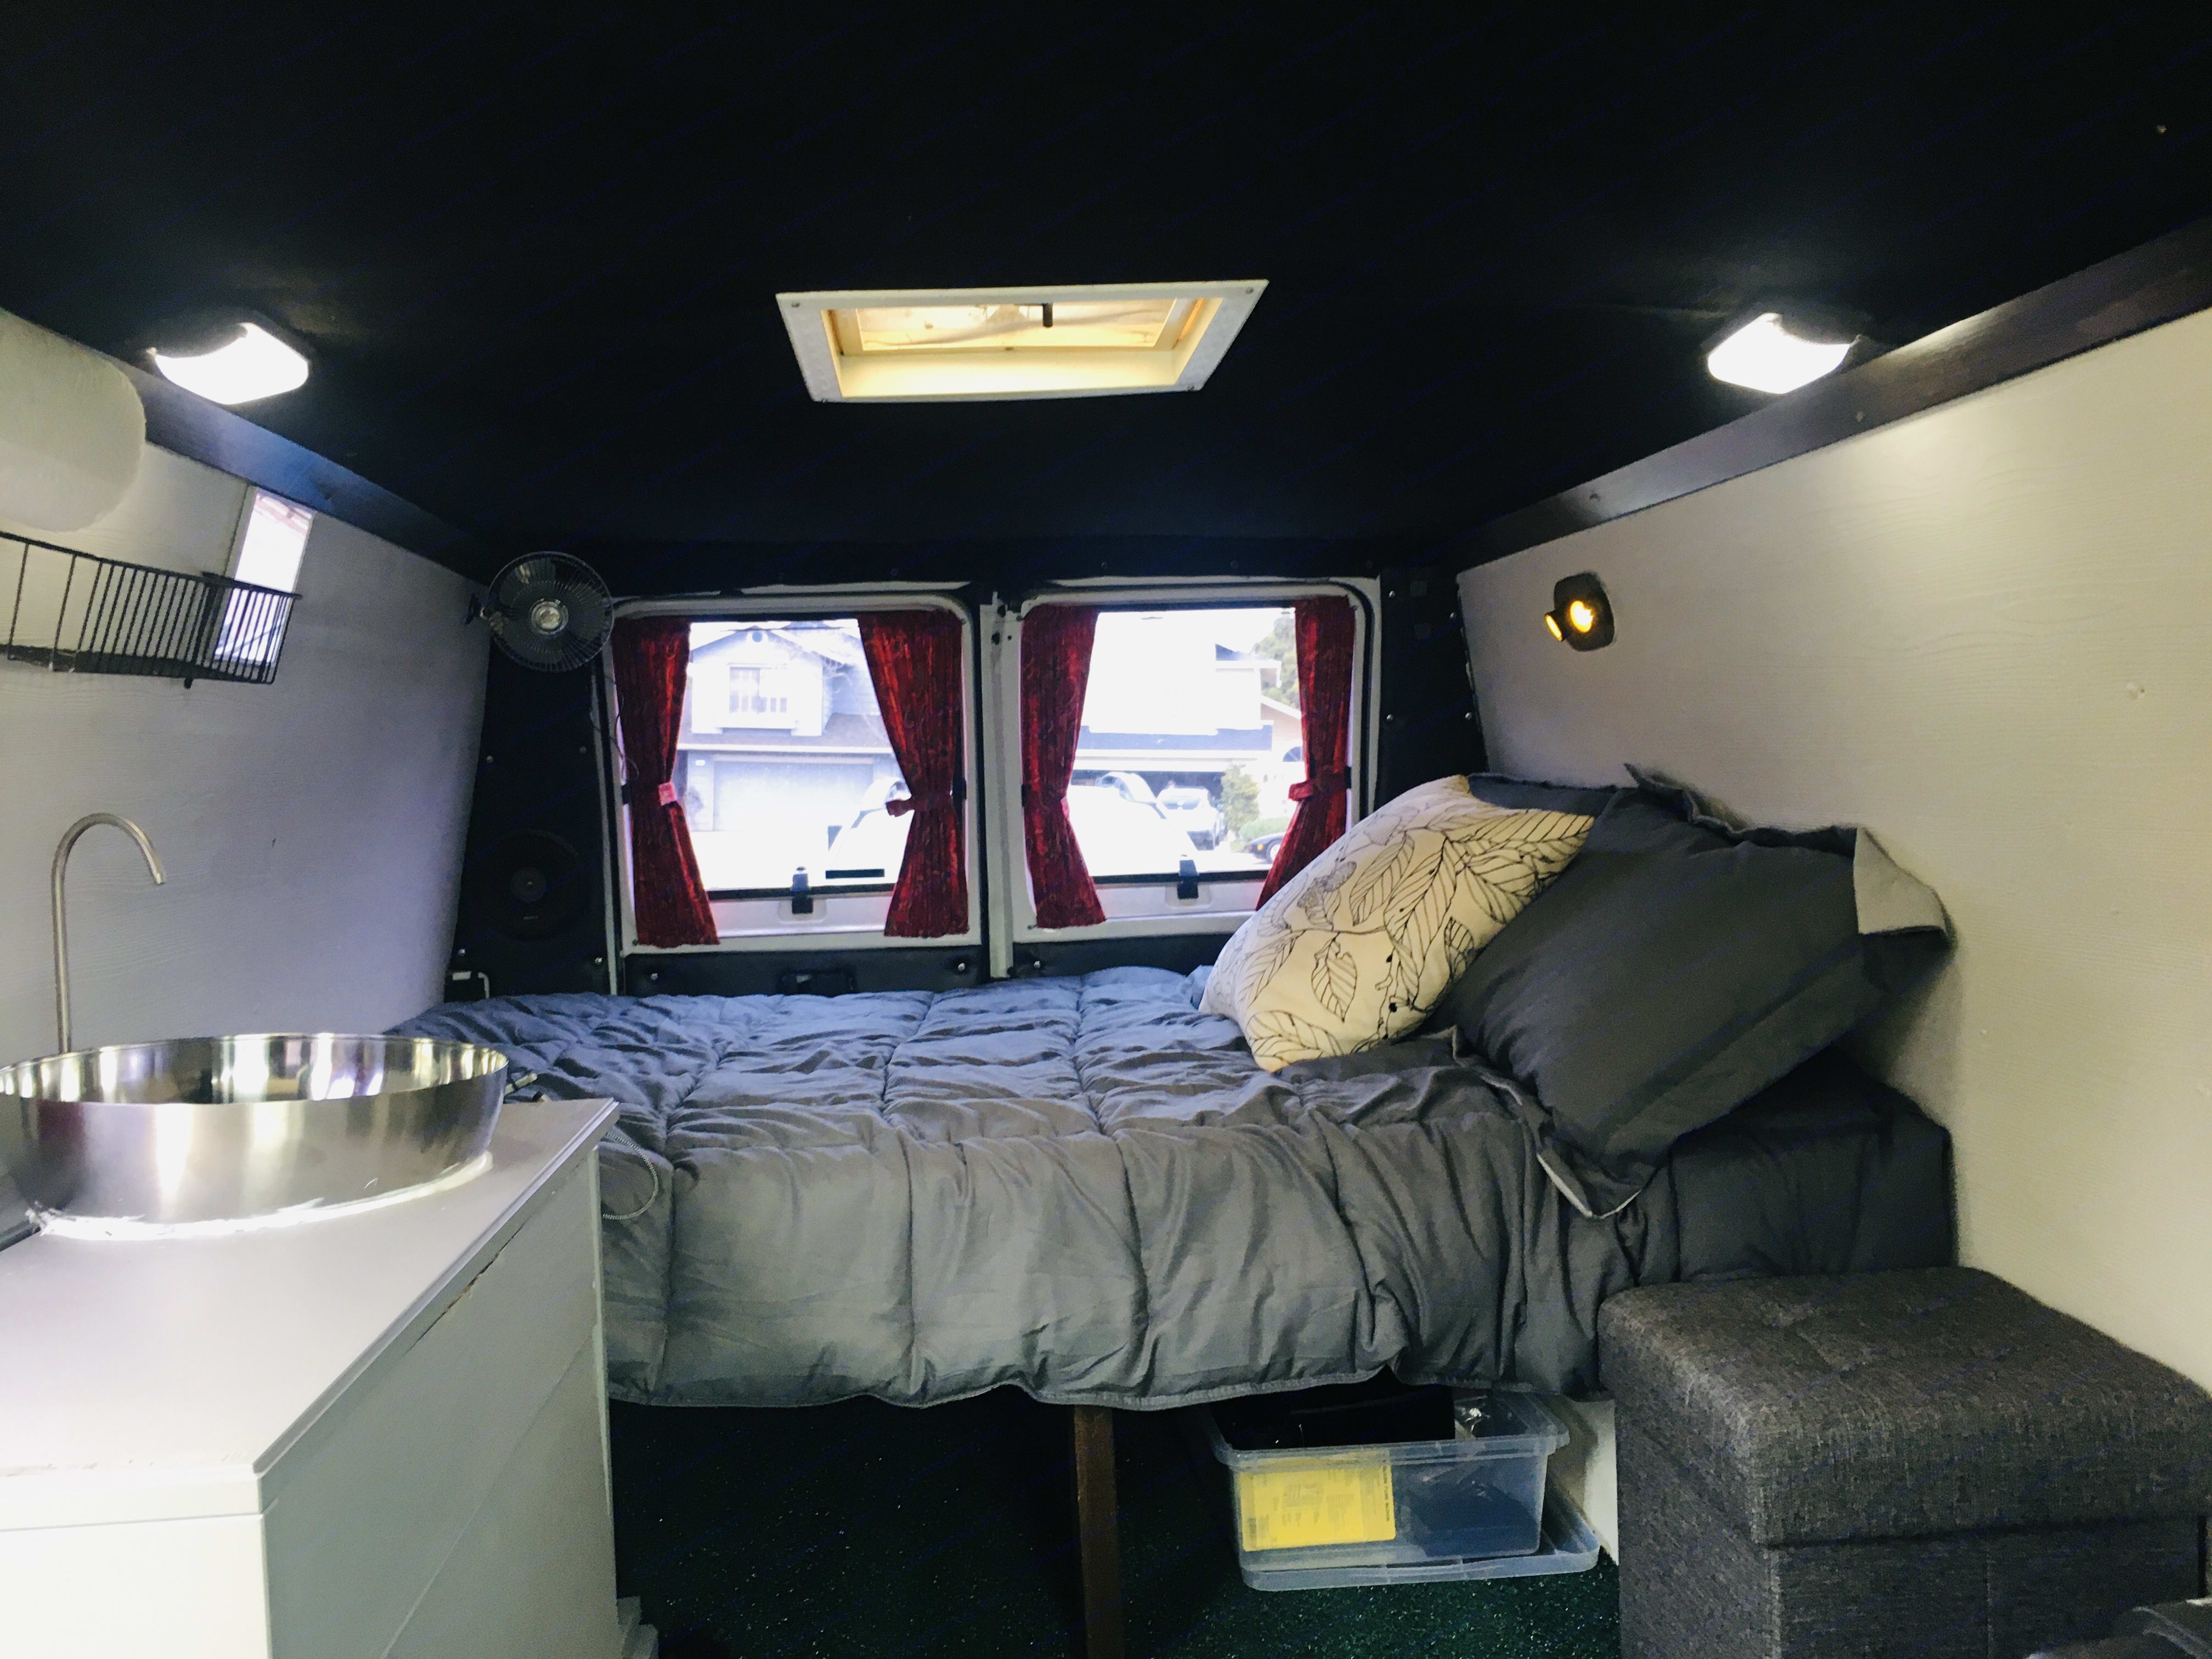 Cozy Bed (5'10 length), roof vent, fan, LED light, table and sink. USB at the foot of the bed. Lots of storage under the bed.. Dodge B2500 2001